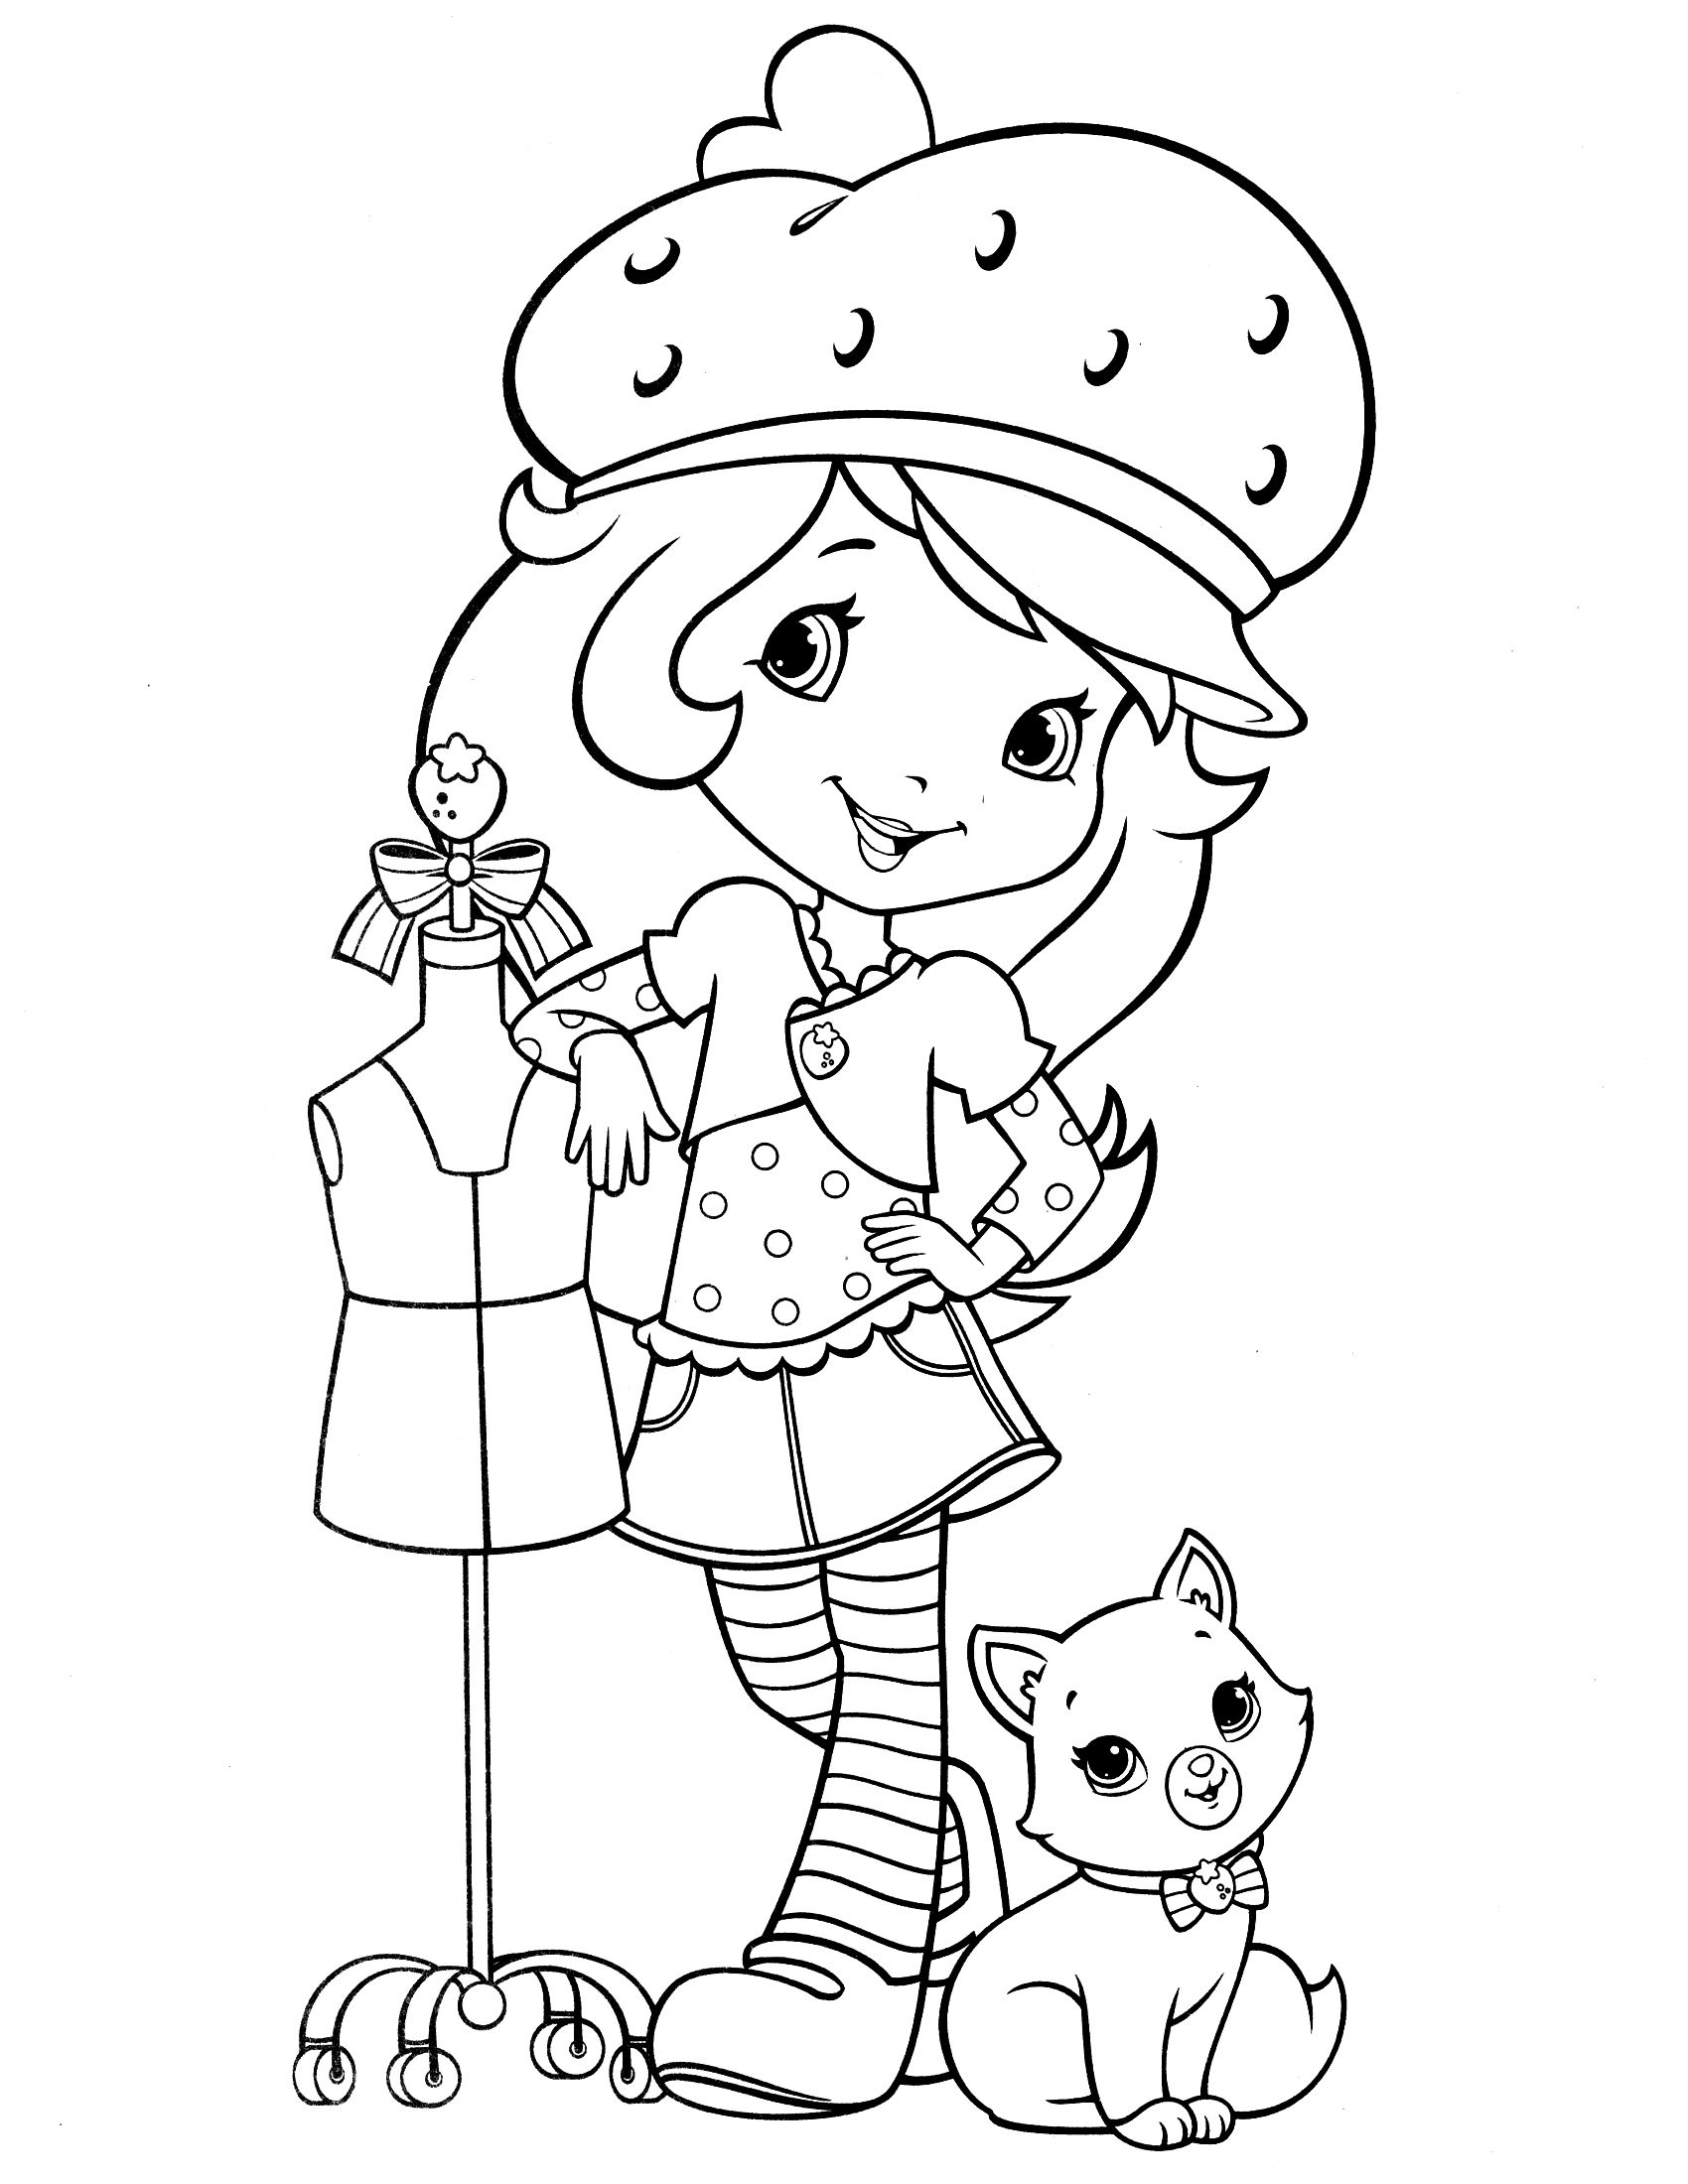 Http Www Icoolpages Com Wp Content Uploads 2014 04 Strawberry Shortcake Coloring Pa Strawberry Shortcake Coloring Pages Cartoon Coloring Pages Coloring Pages